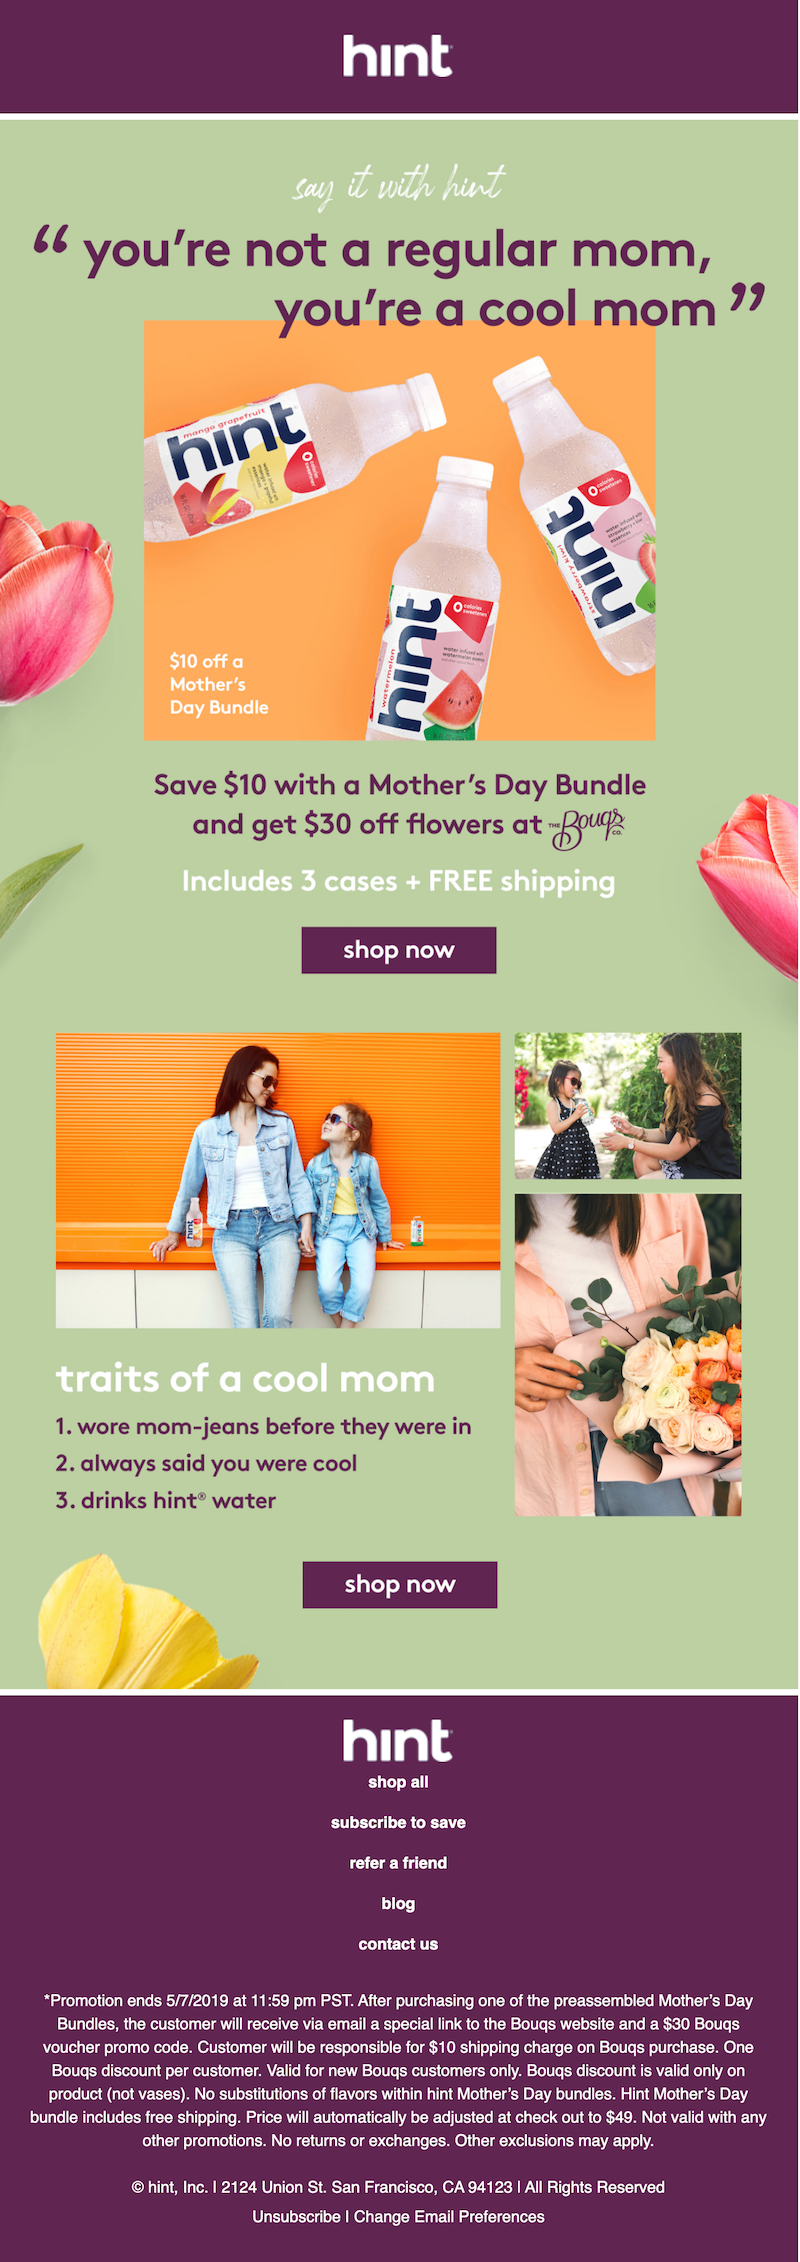 colorful mother's day email